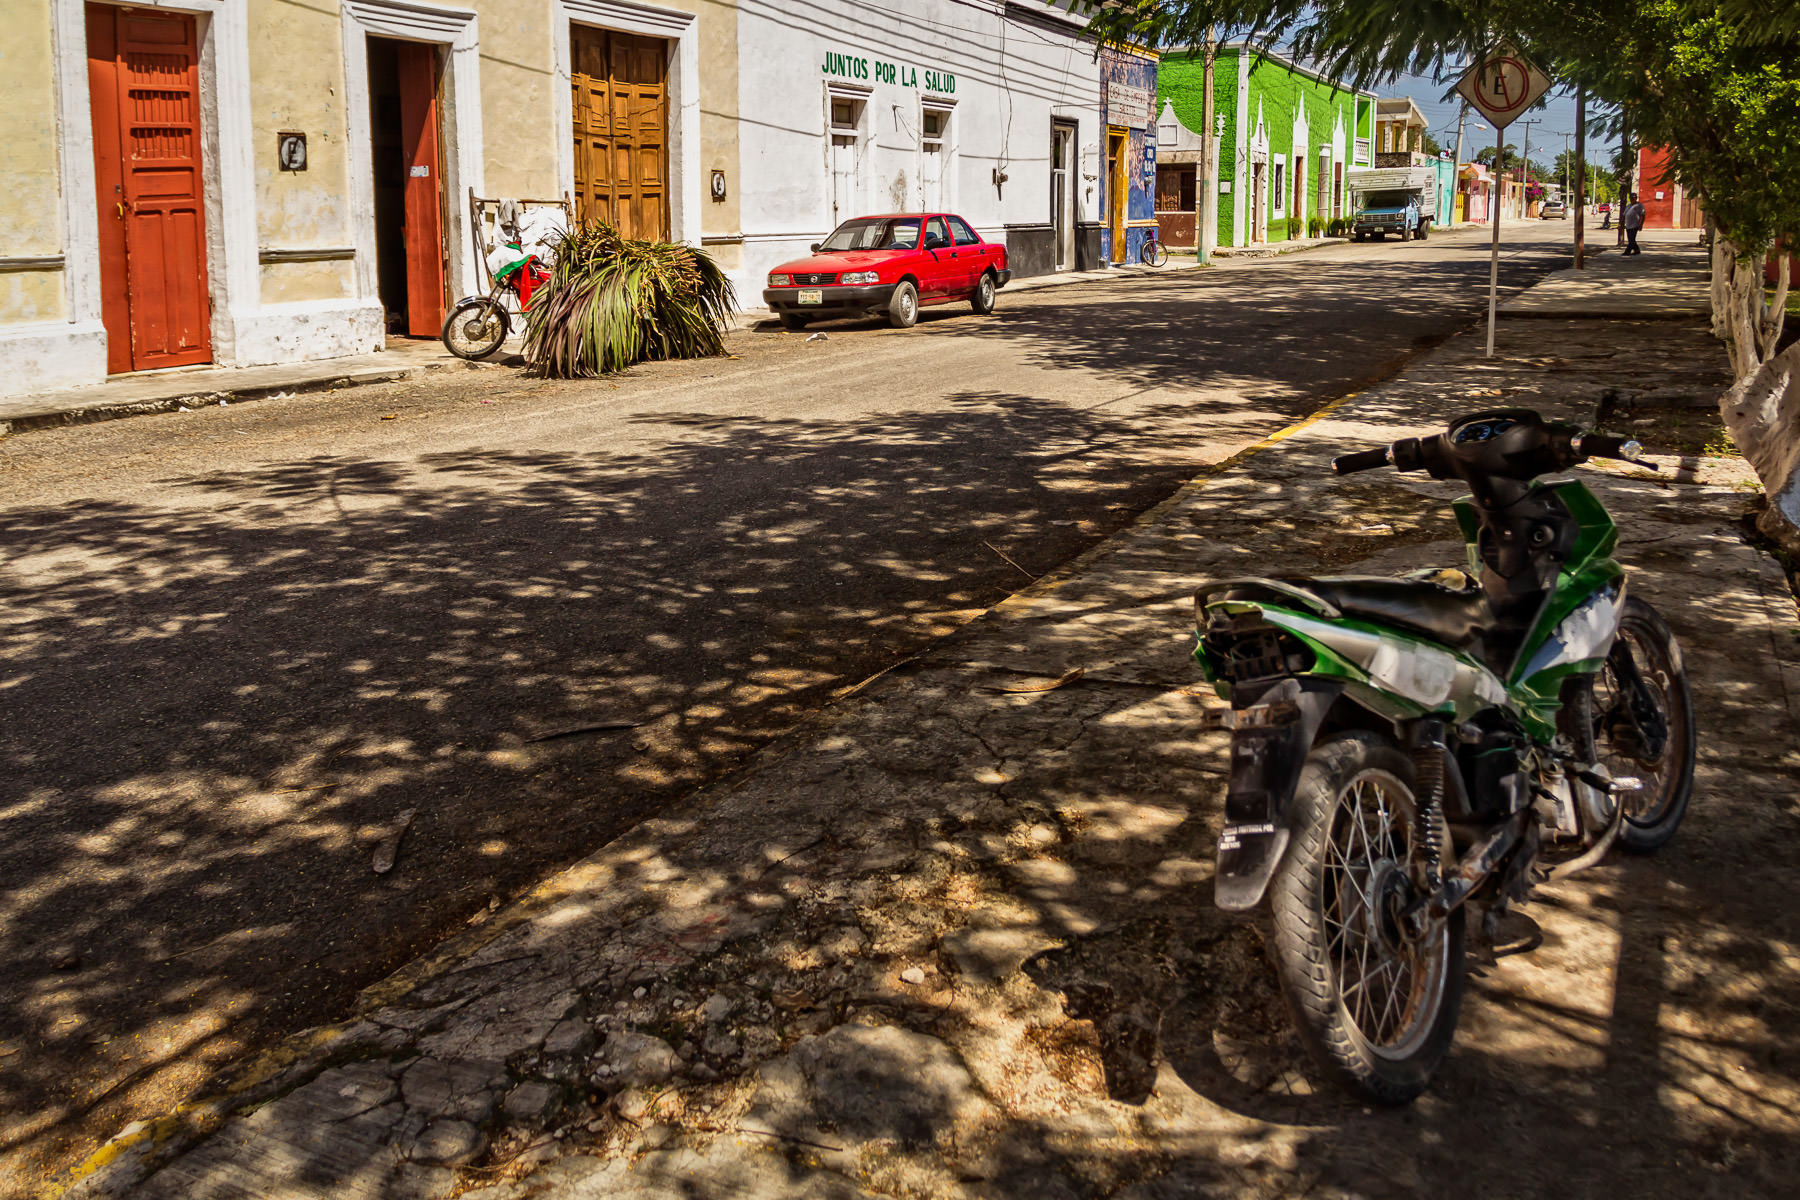 A motorcycle sits in the shade on a street in the village of Dzemul, Yucatan, Mexico.